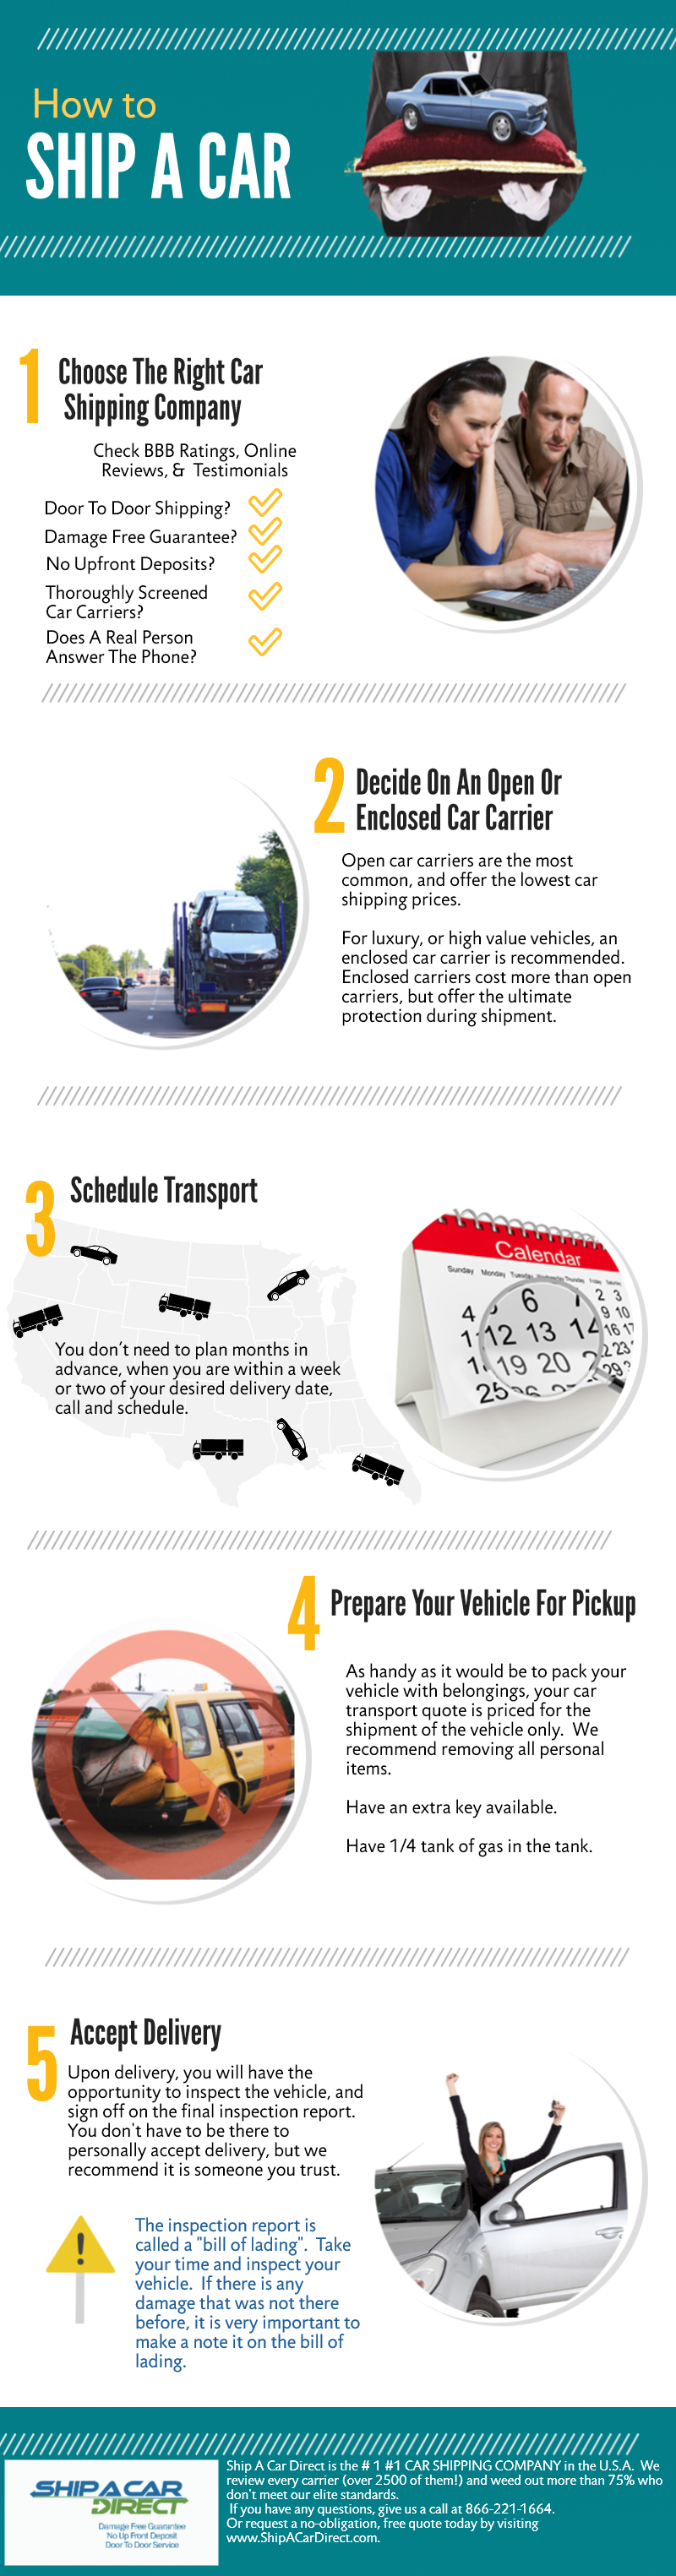 Infographic Explains How To Ship A Car In 5 Easy Steps